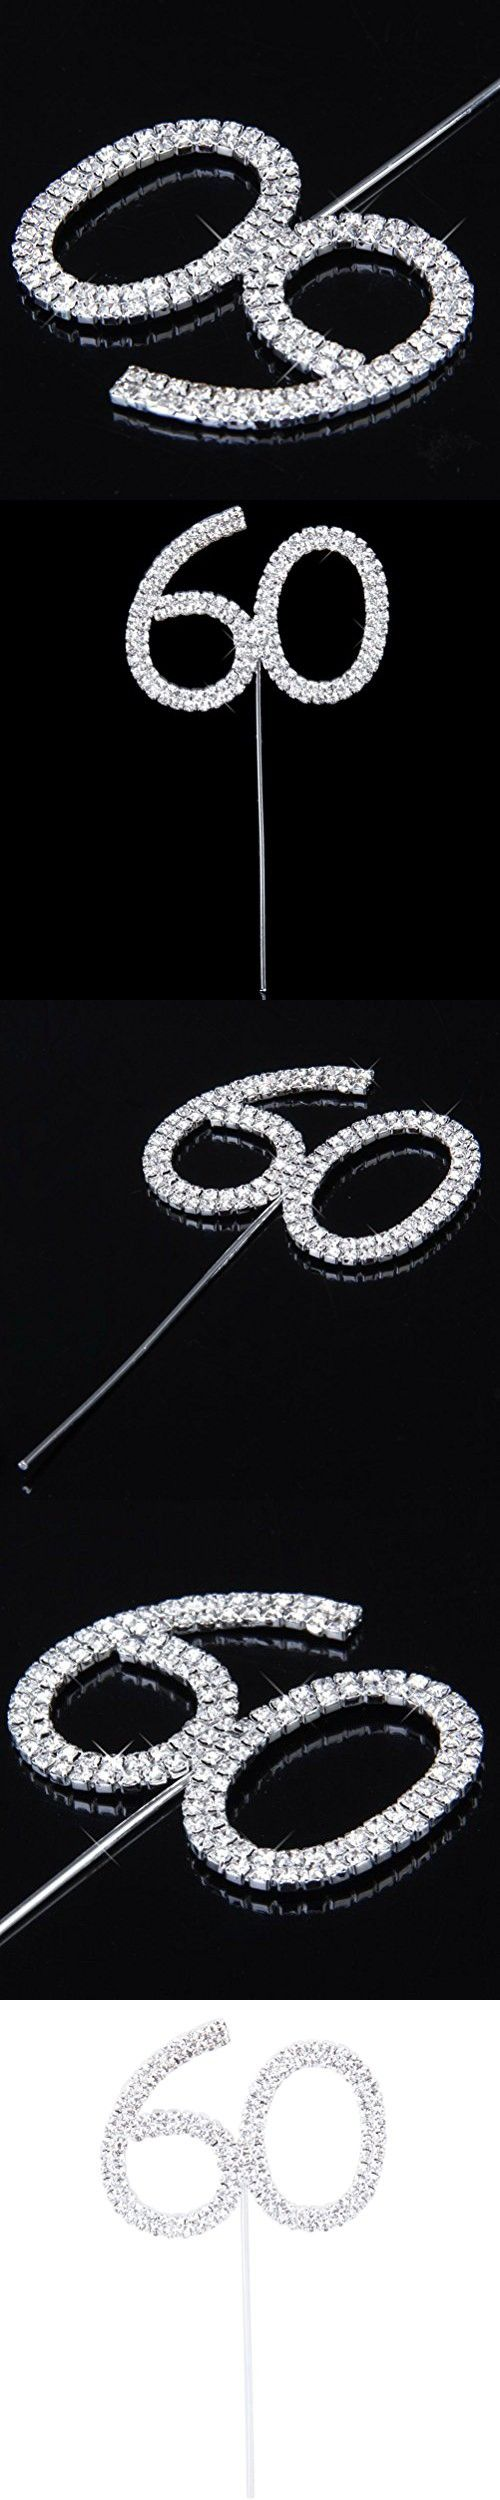 60th Anniversary Birthday Party Cake Topper with Rhinestone Silver